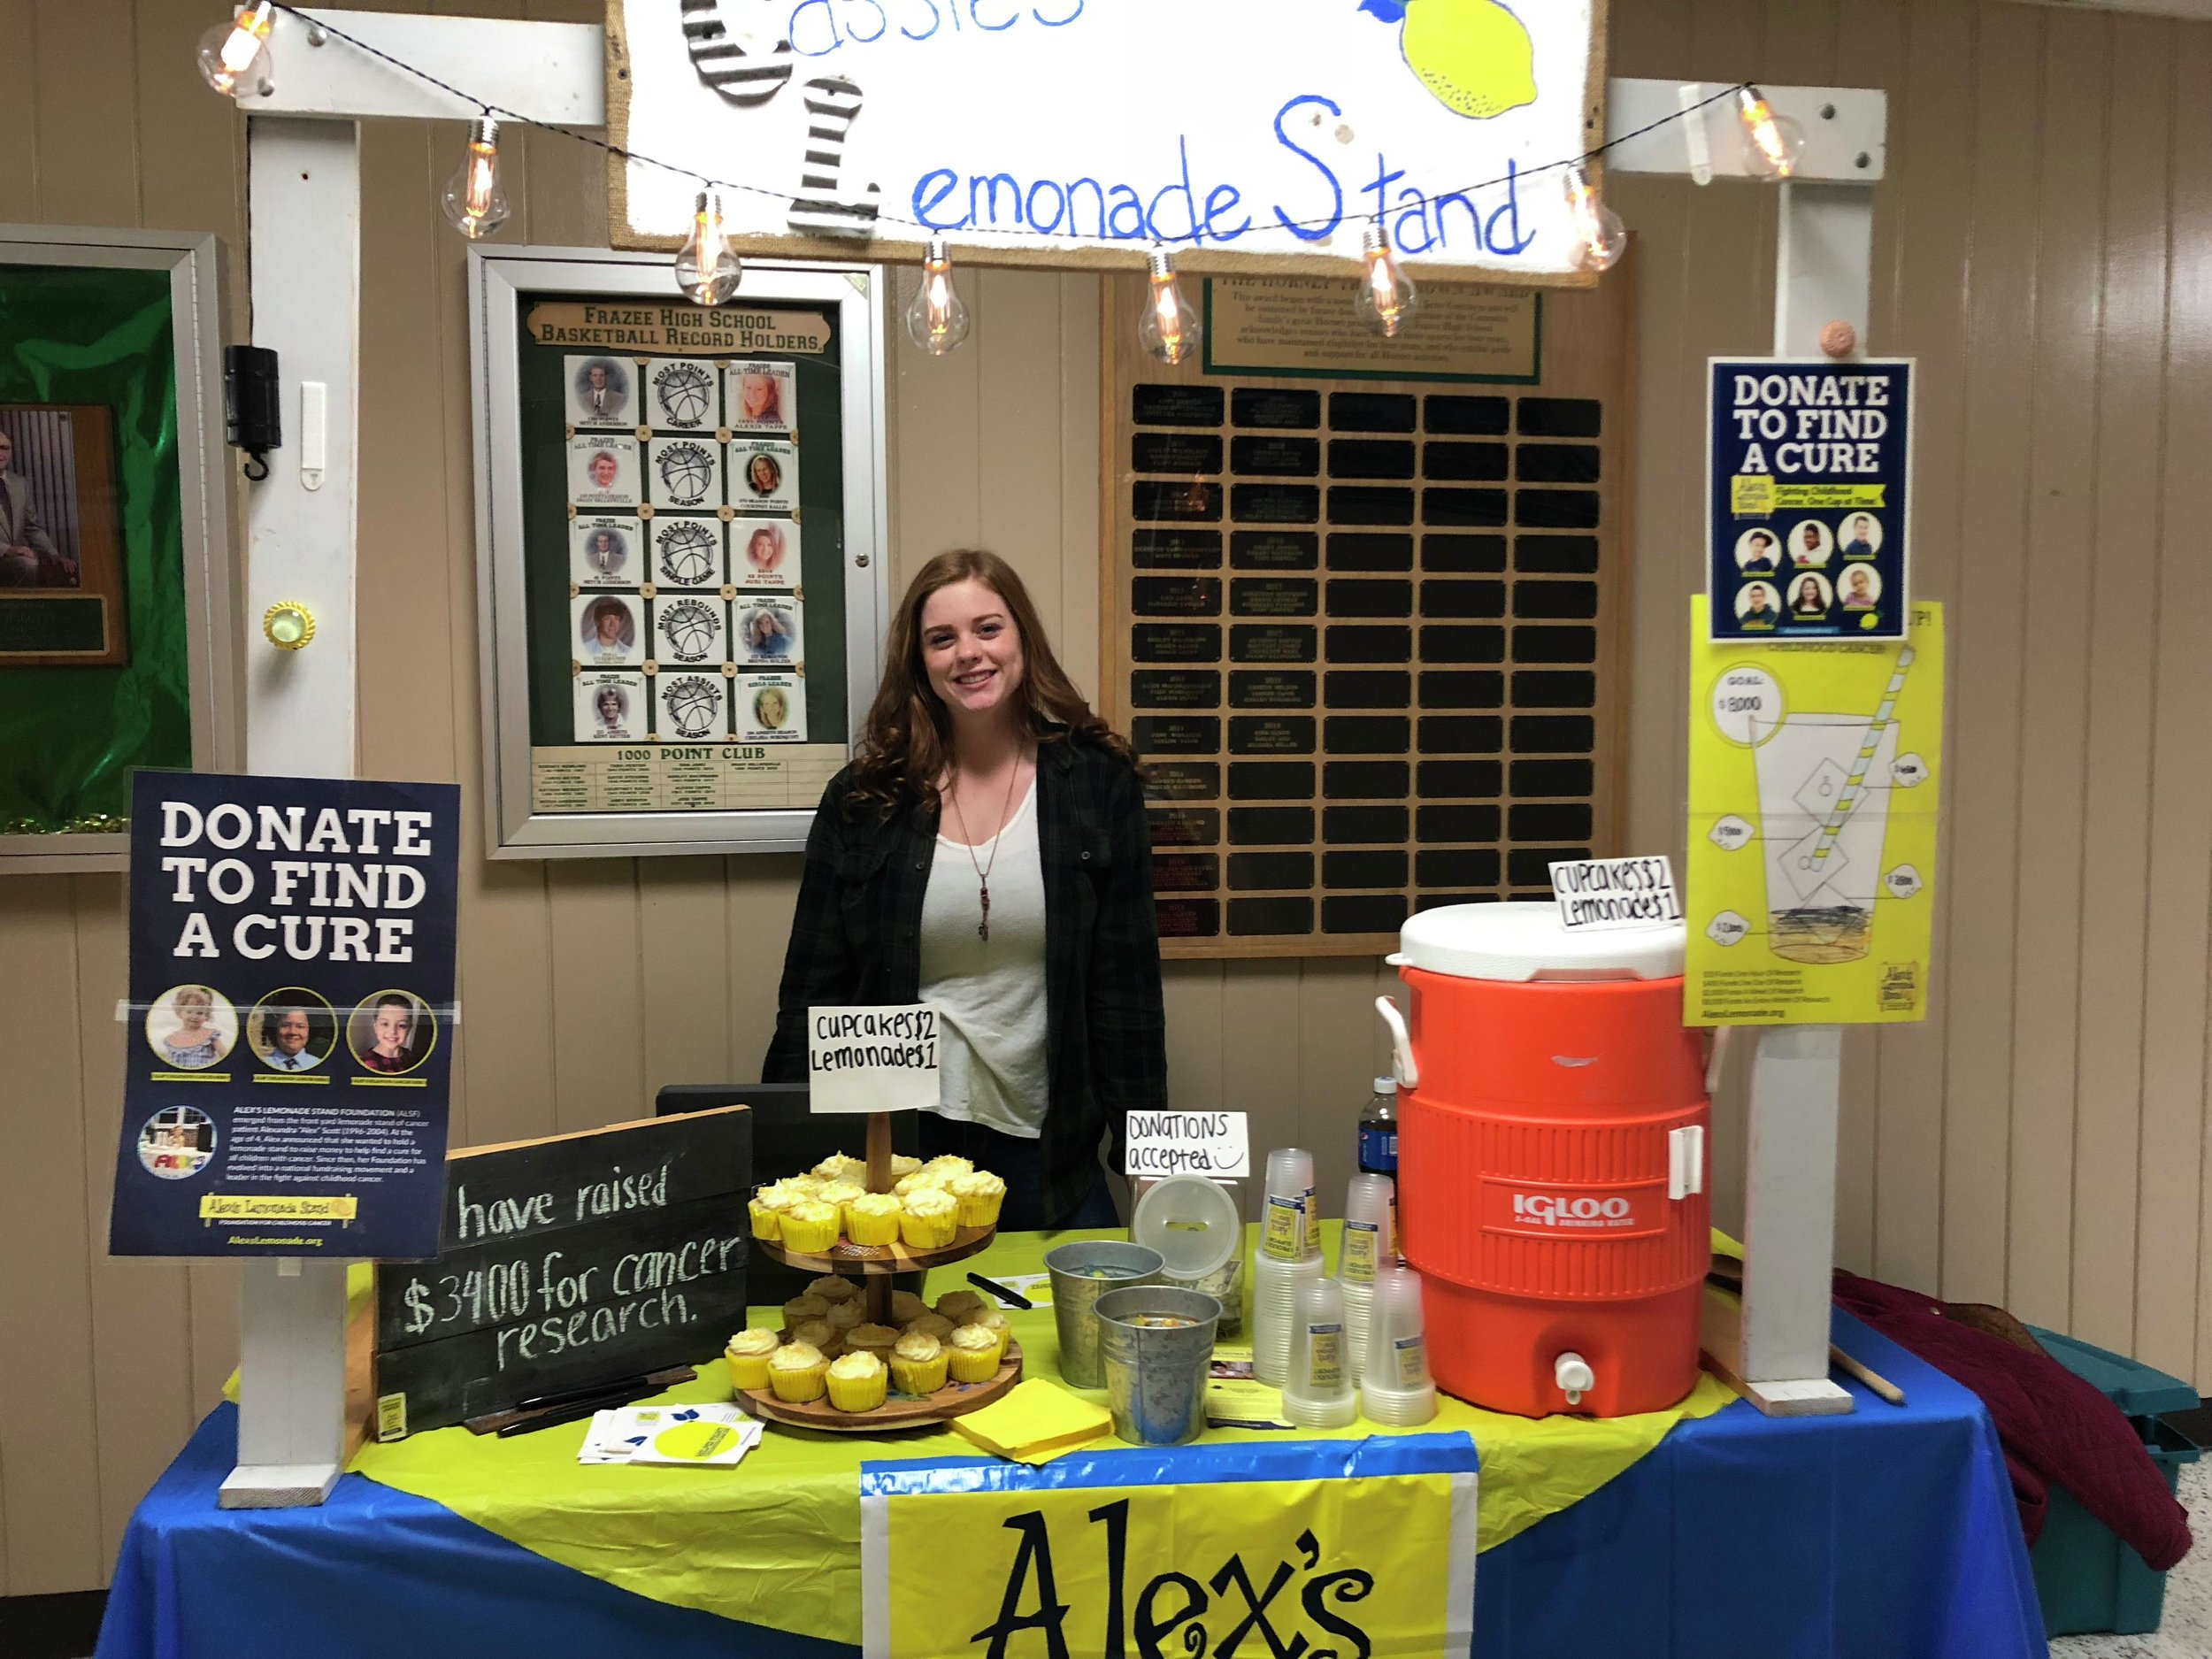 Cassidy Shipman mans her lemonade stand and helps raise awareness for the cause of fighting childhood cancers during a recent Frazee High School sporting event. Since she got involved with the Alex's Lemonade Stand Foundation, Cassie has raised $3,400 for the cause. (Submitted photo)